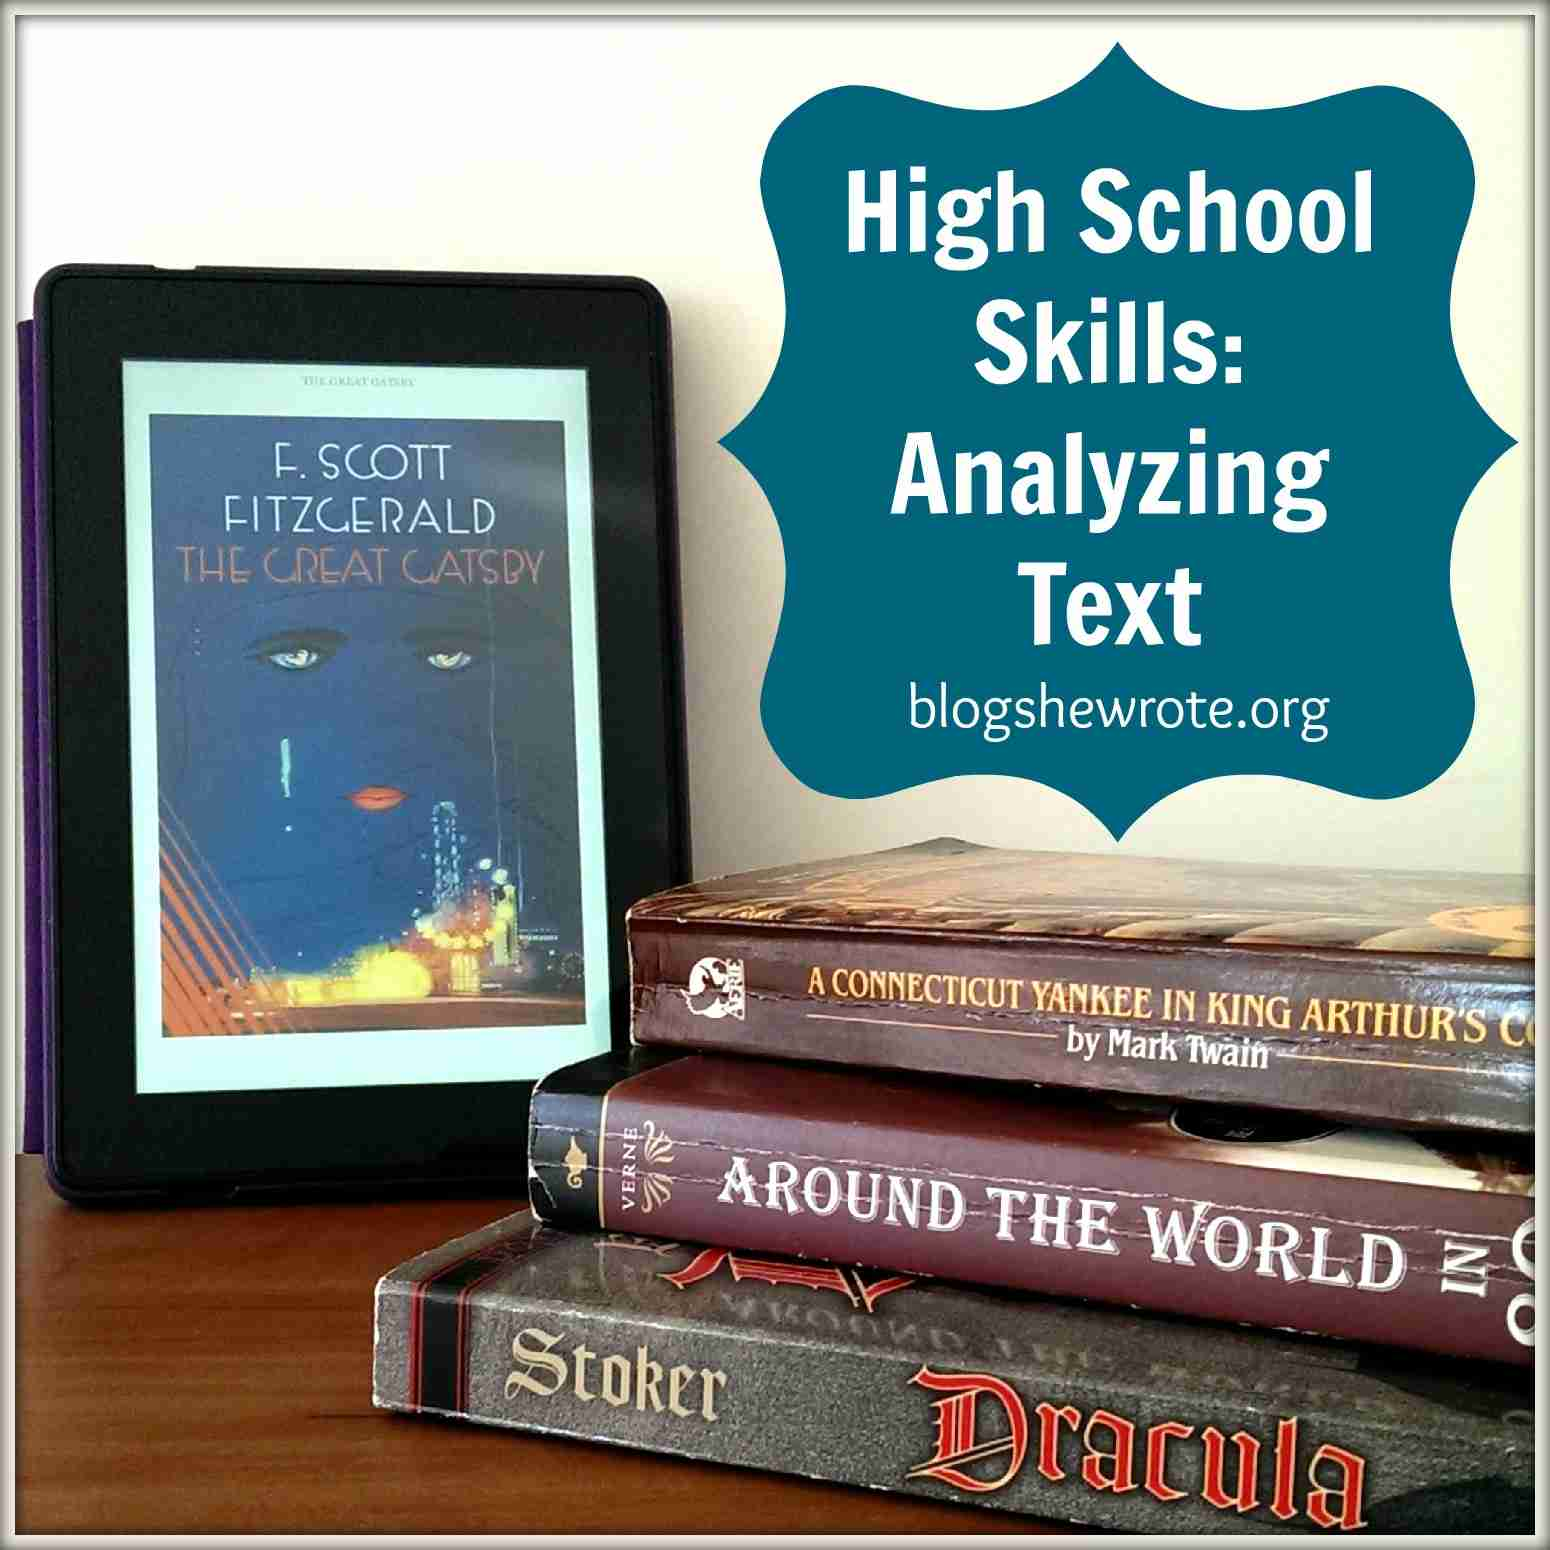 Blog, She Wrote: High School Skills- Analyzing Text